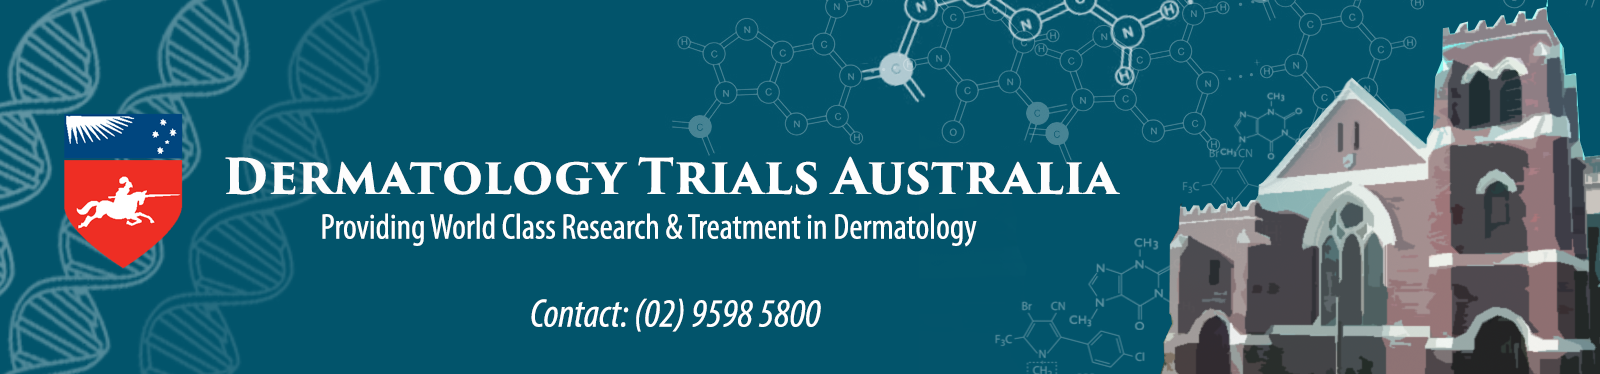 Dermatology Trials Australia